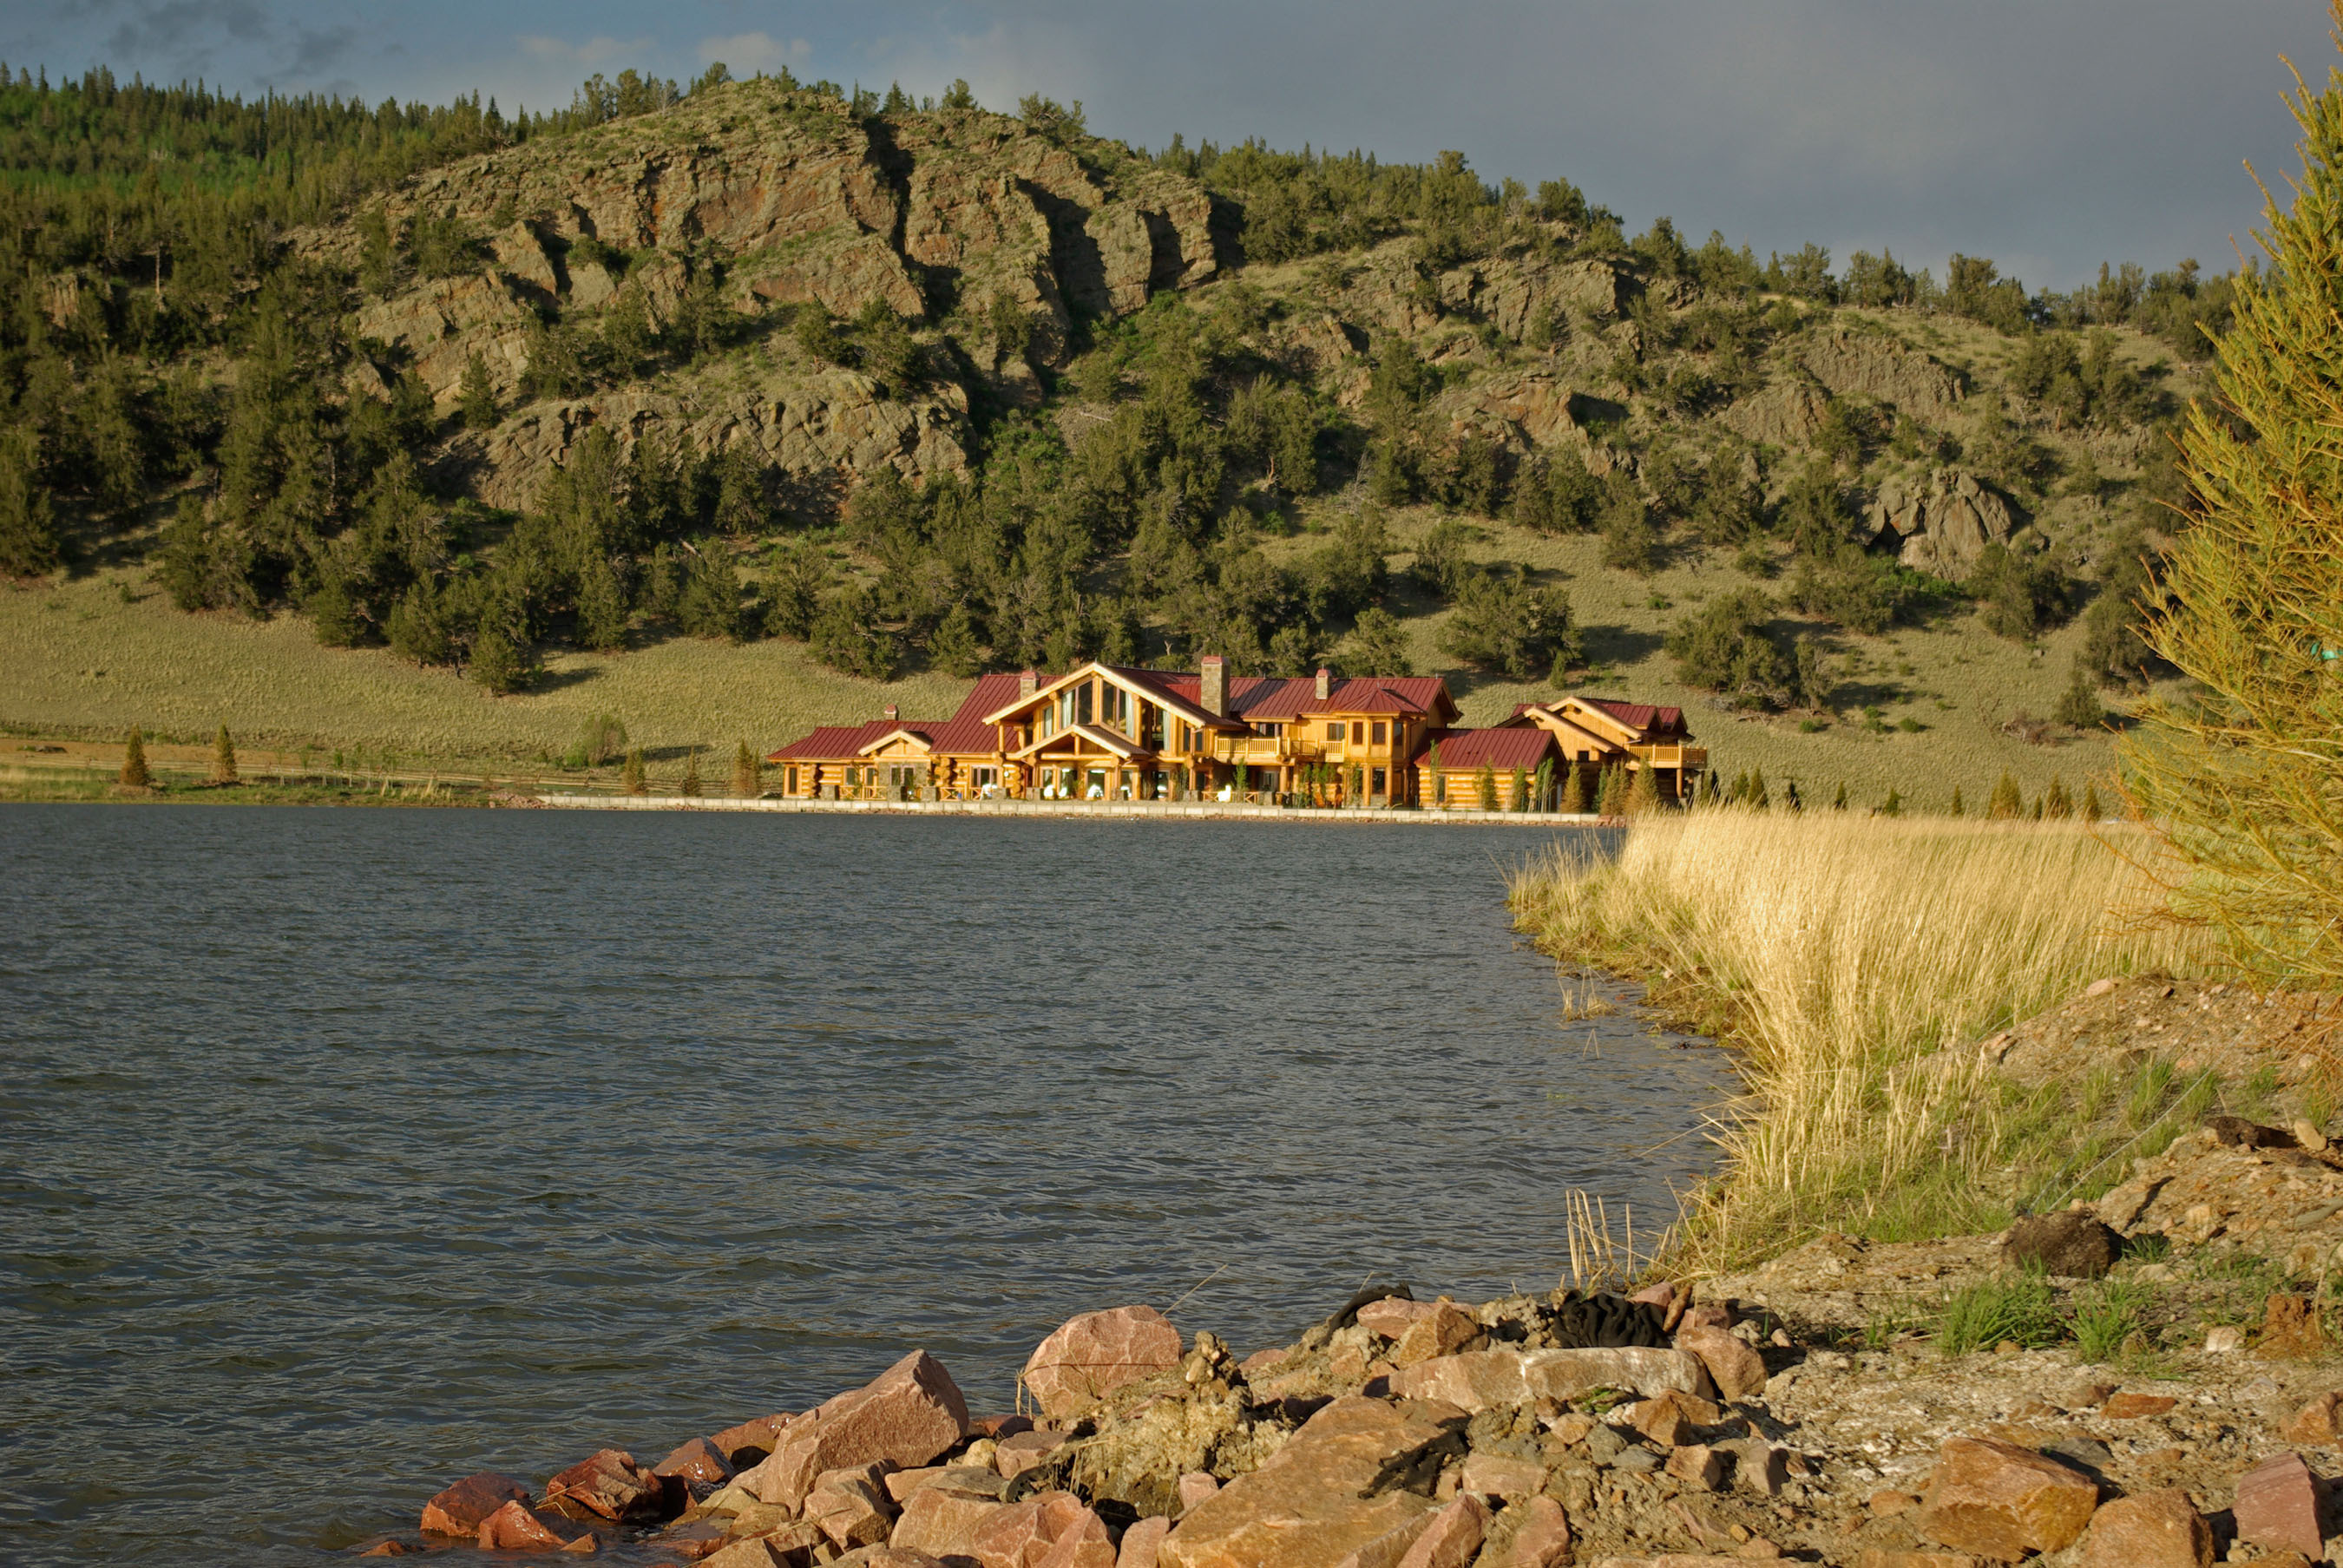 Luxury Ranch Auction Oct 11th 3,688-Ac Rocky Mountain Retreat By Concierge Auctions FlyingHorseAuction.com. (PRNewsFoto/Concierge Auctions) (PRNewsFoto/CONCIERGE AUCTIONS)